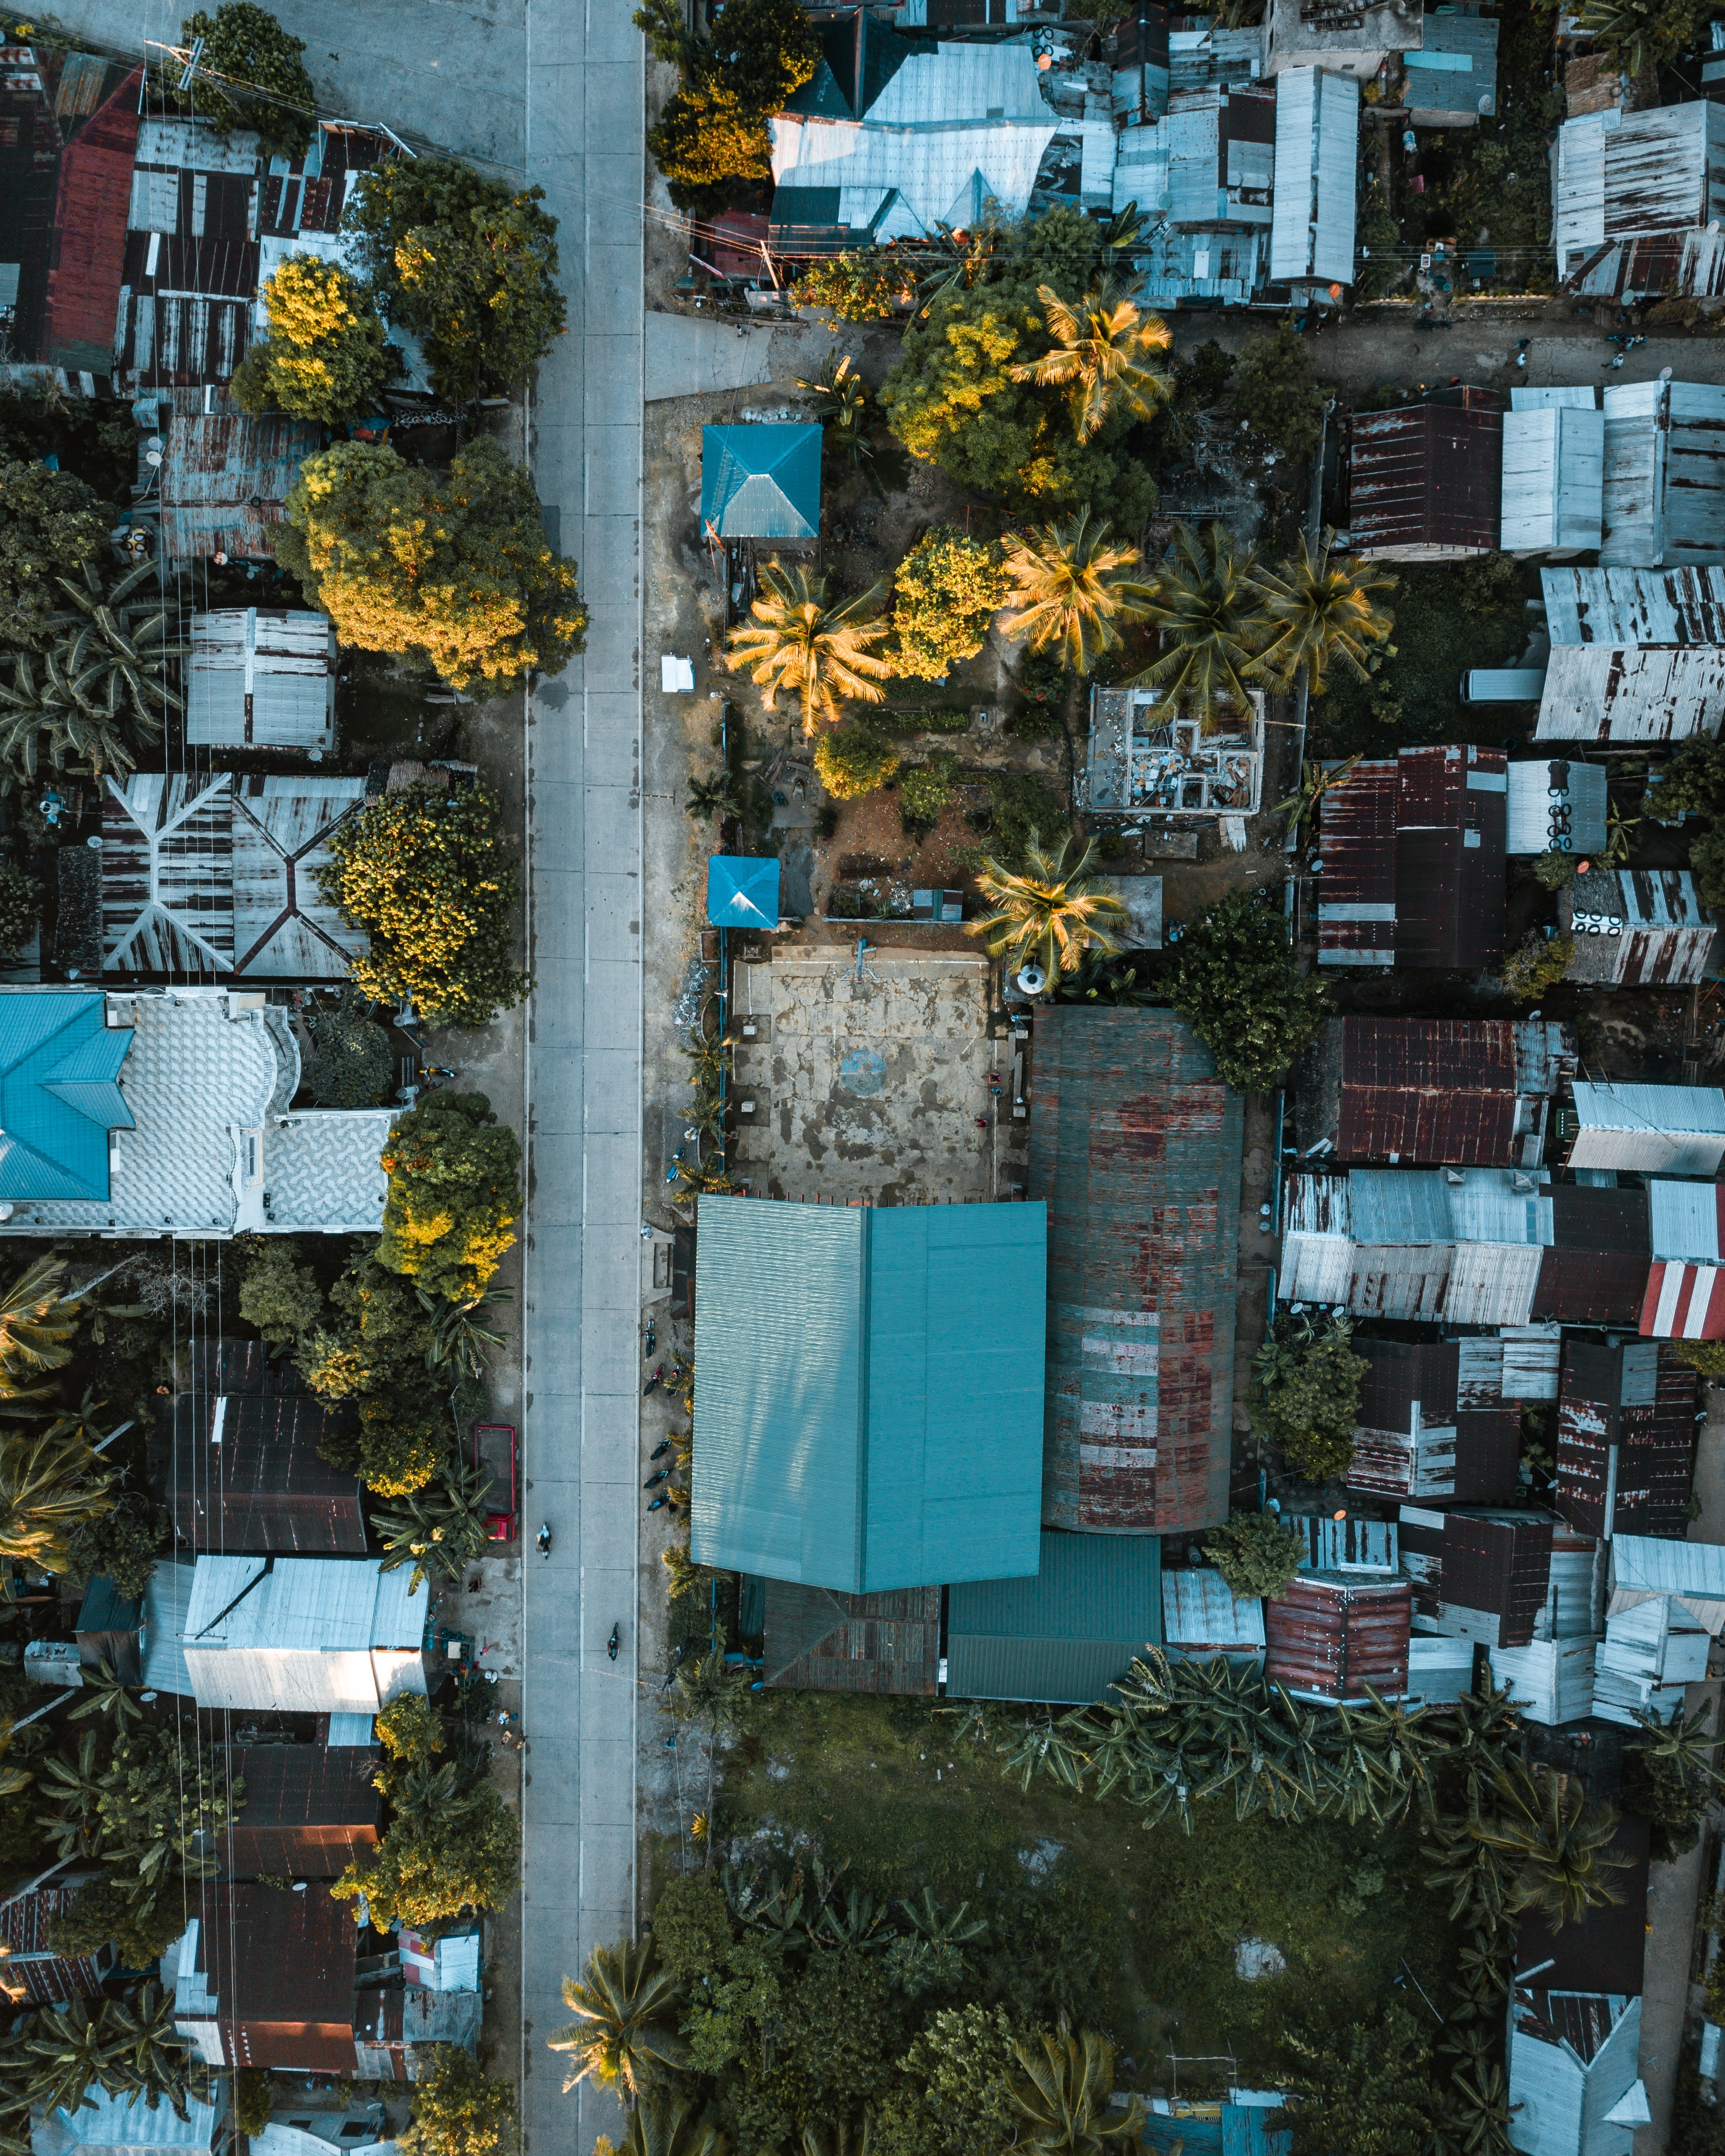 Drone shot of a small town near Cloud 9 in the Island of Siargao in the Philippines